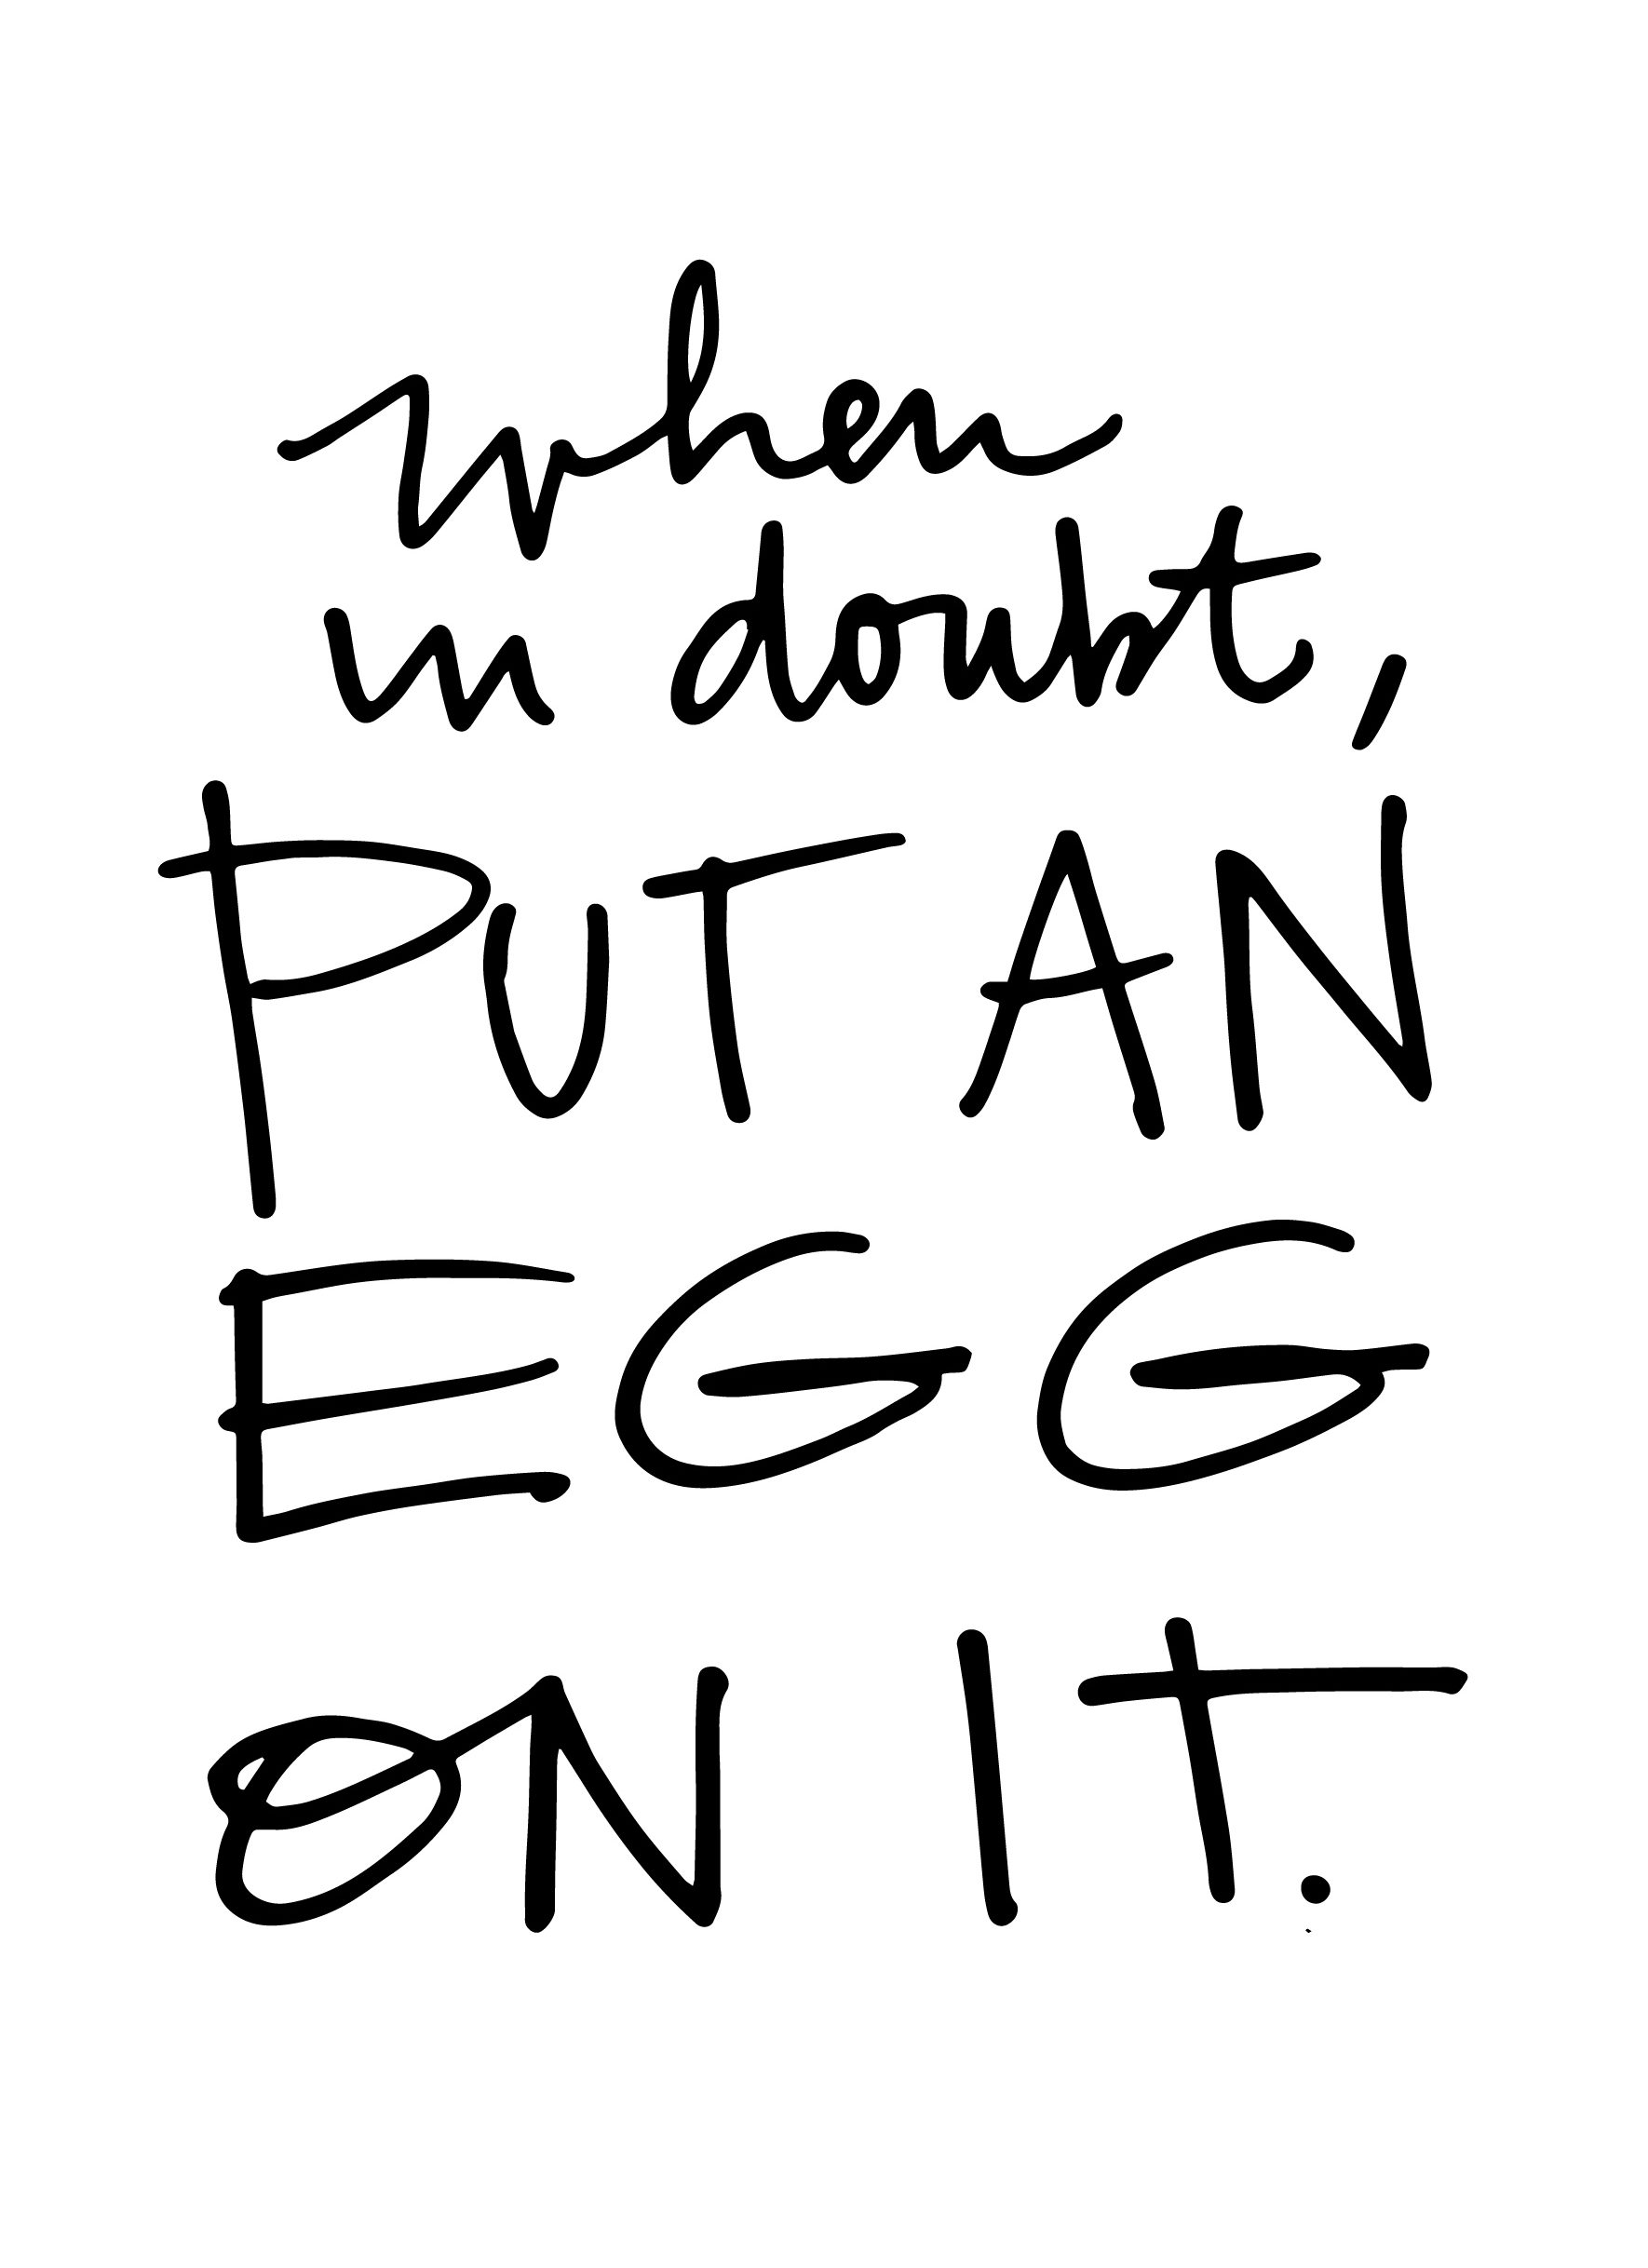 When in doubt, Put an Egg on It! Check out some easy egg ideas on Shutterbean.com